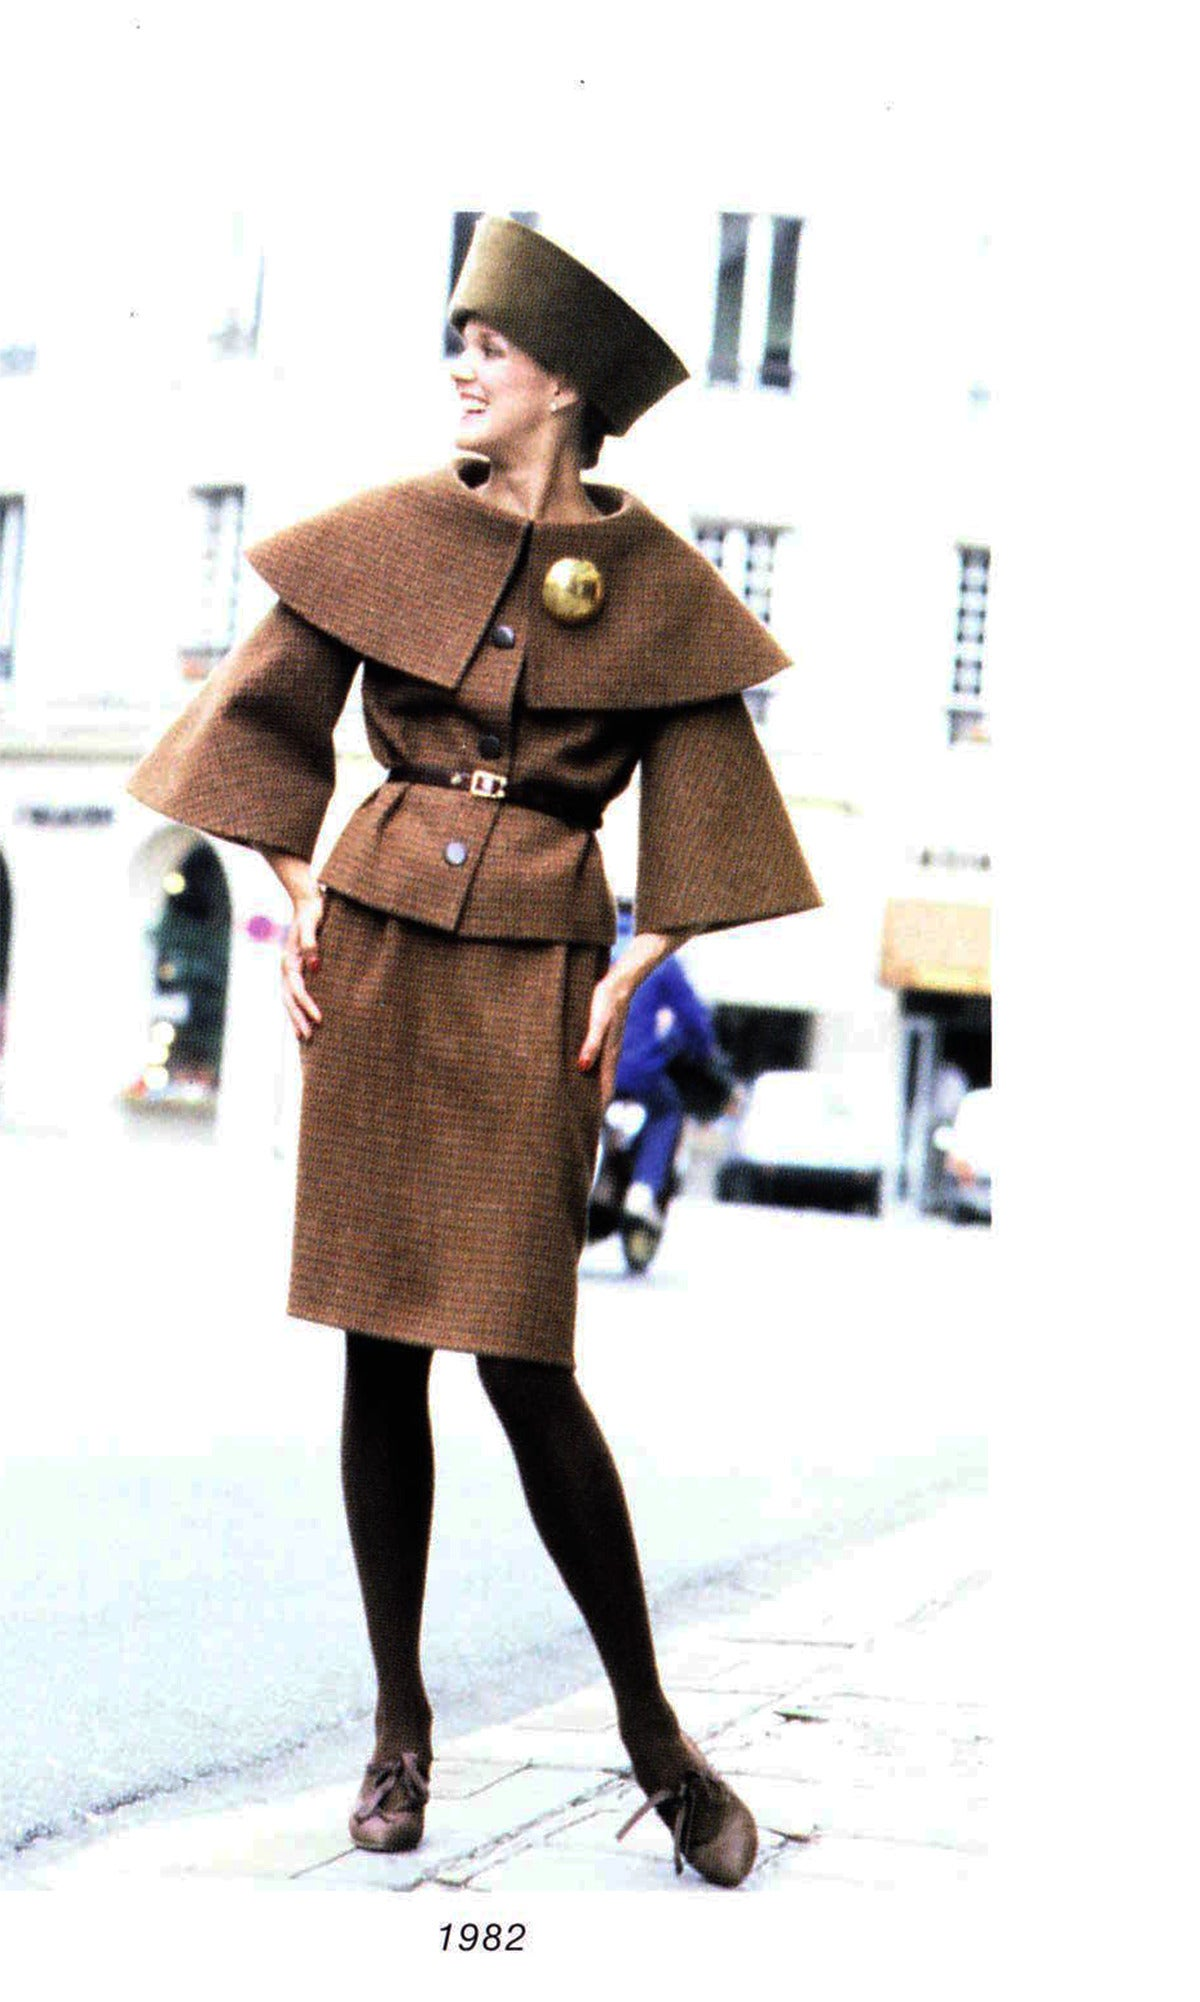 Pierre Cardin Tweed Jacket and Skirt Ensemble Suit w/Detachable collar ca. 1982 10